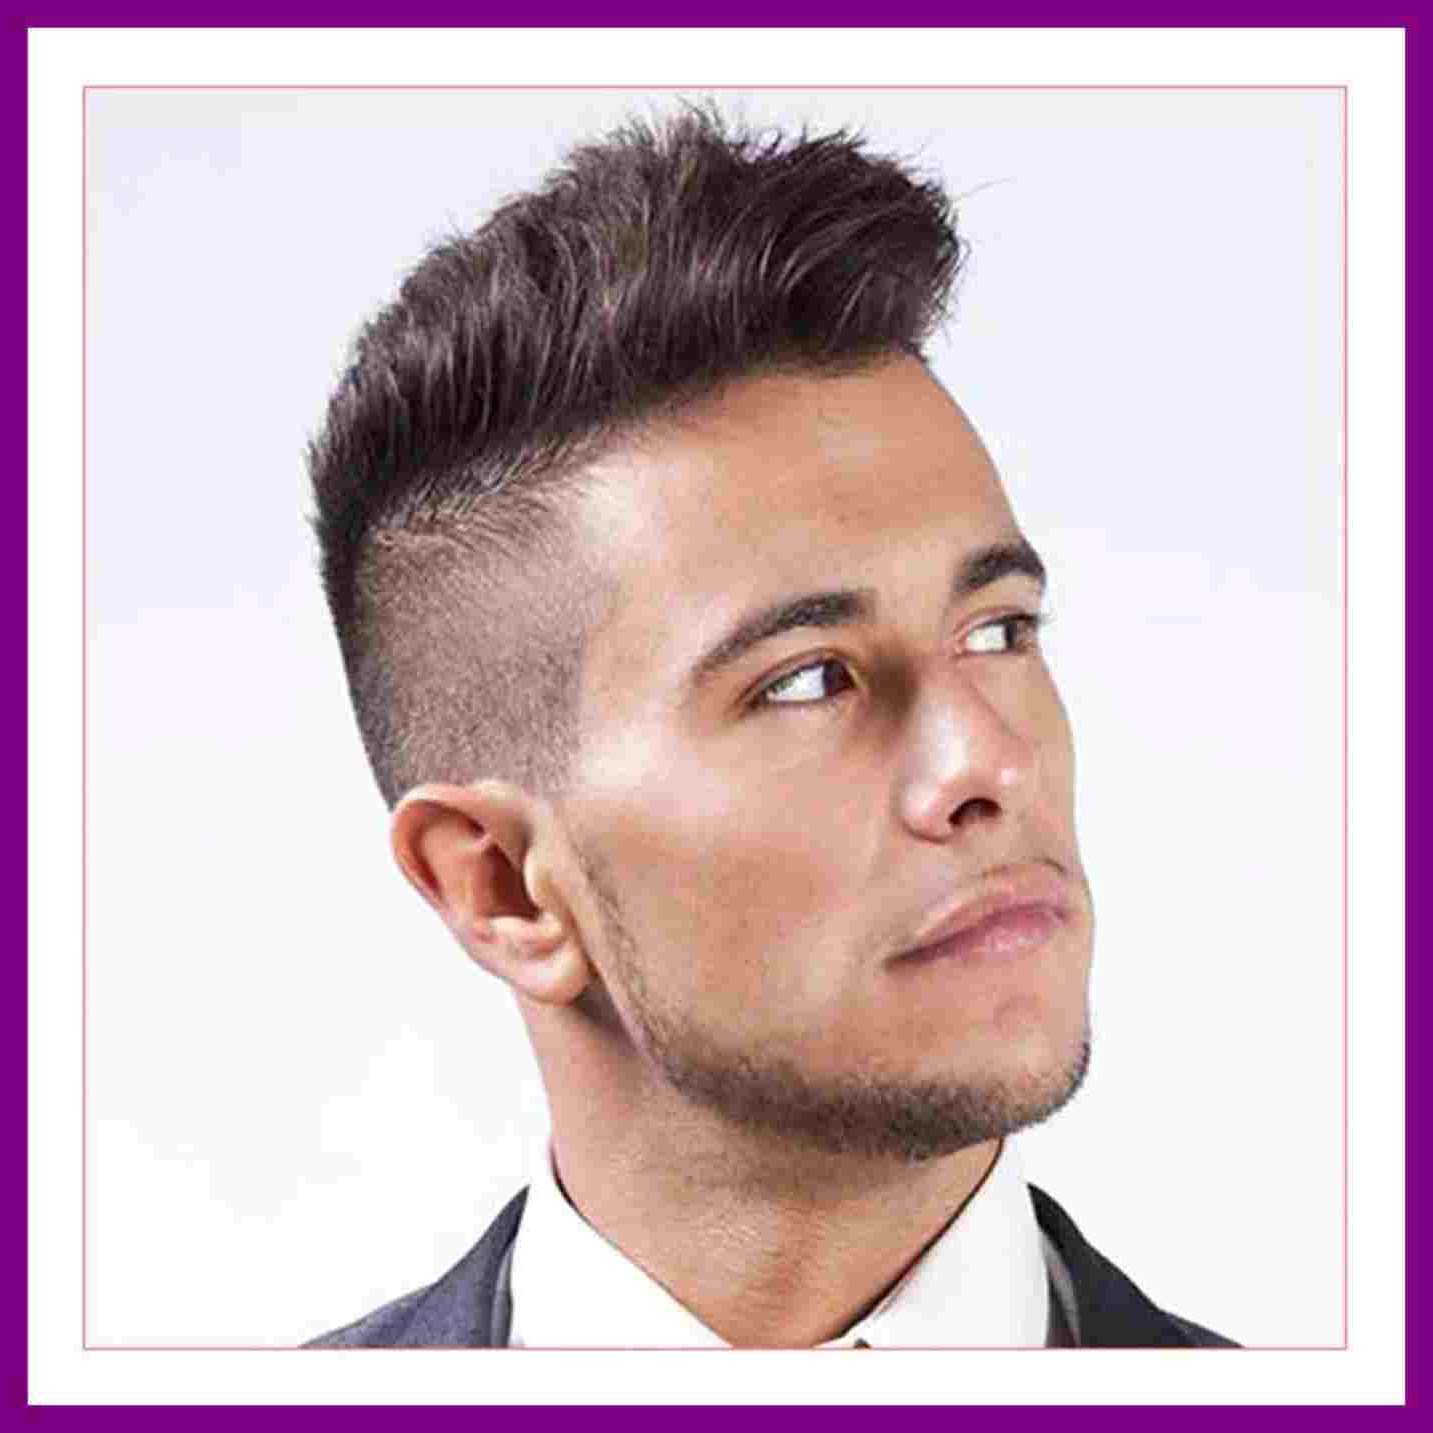 Fresh Short Hairstyles For Men With Big Foreheads New Hairstyle With Short Hairstyles For Women With Big Foreheads (View 18 of 25)